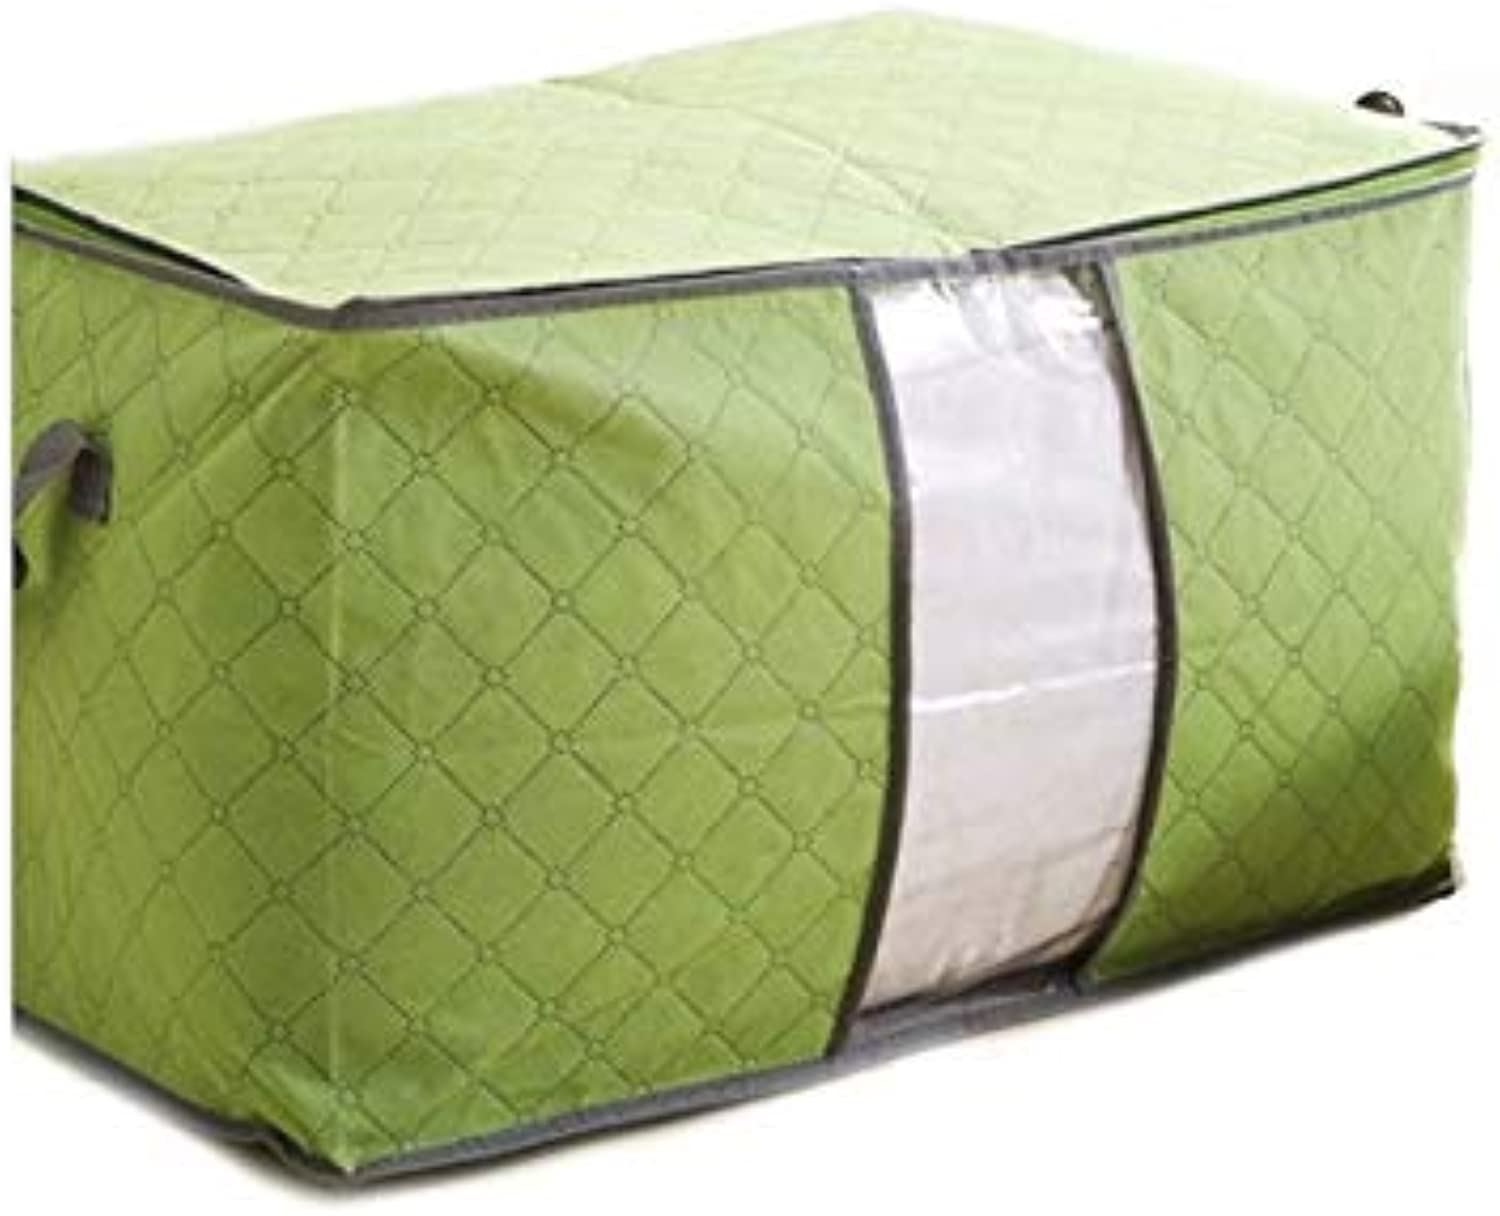 Tyro DINIWELL Non-Woven Fabric Bedding Quilt Pillow Blanket Clothing Storage Bag with Zipper Cloest Wardrobe Organizer